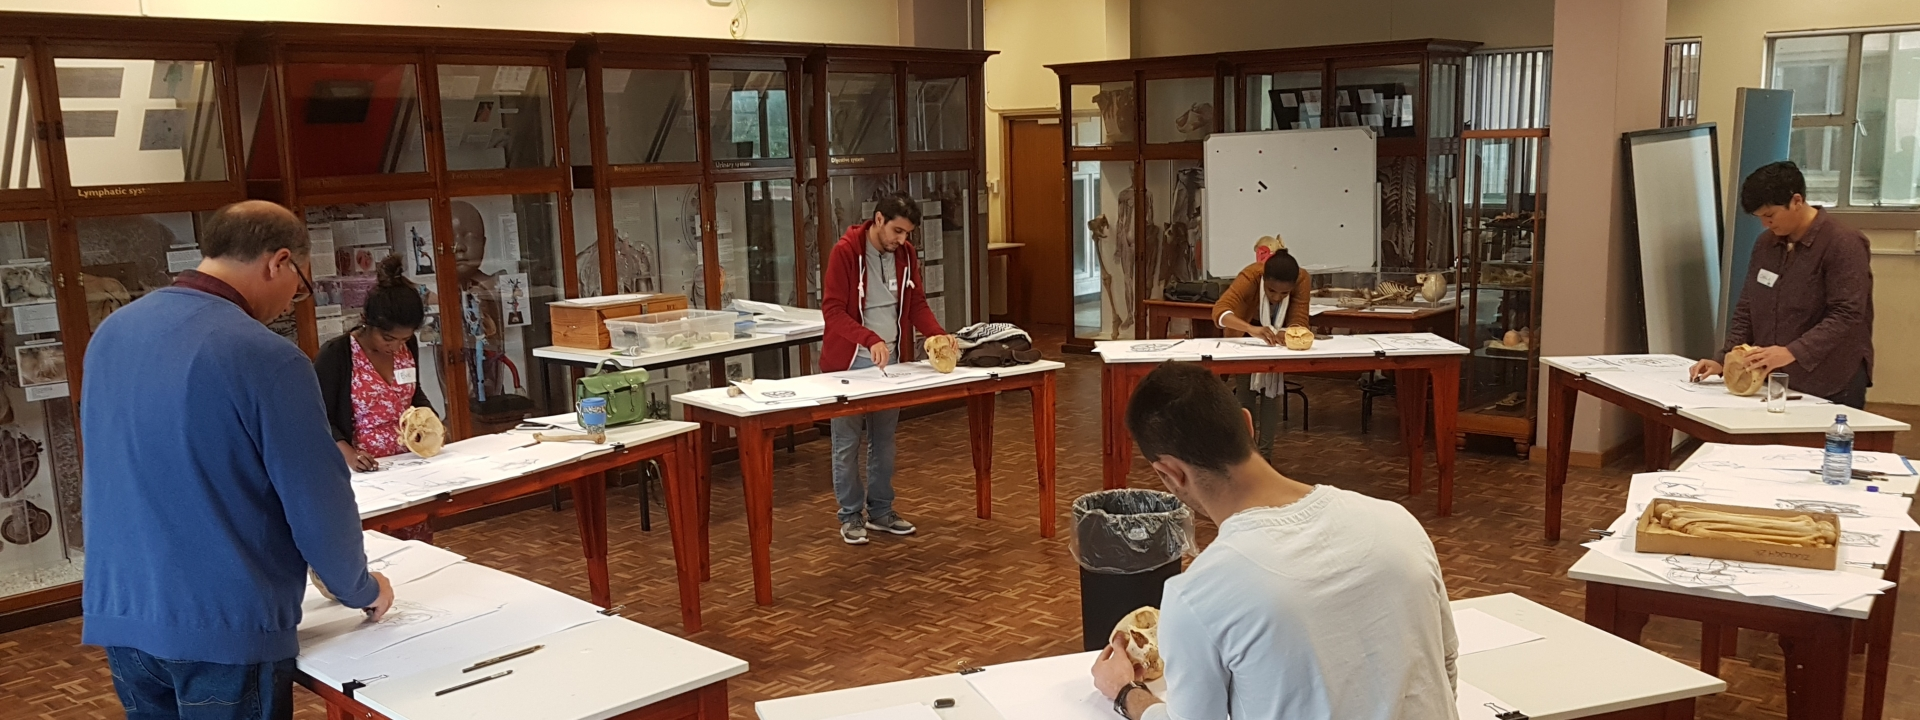 Observation & Drawing Method for Anatomy Study | Saturday 7 July 2018